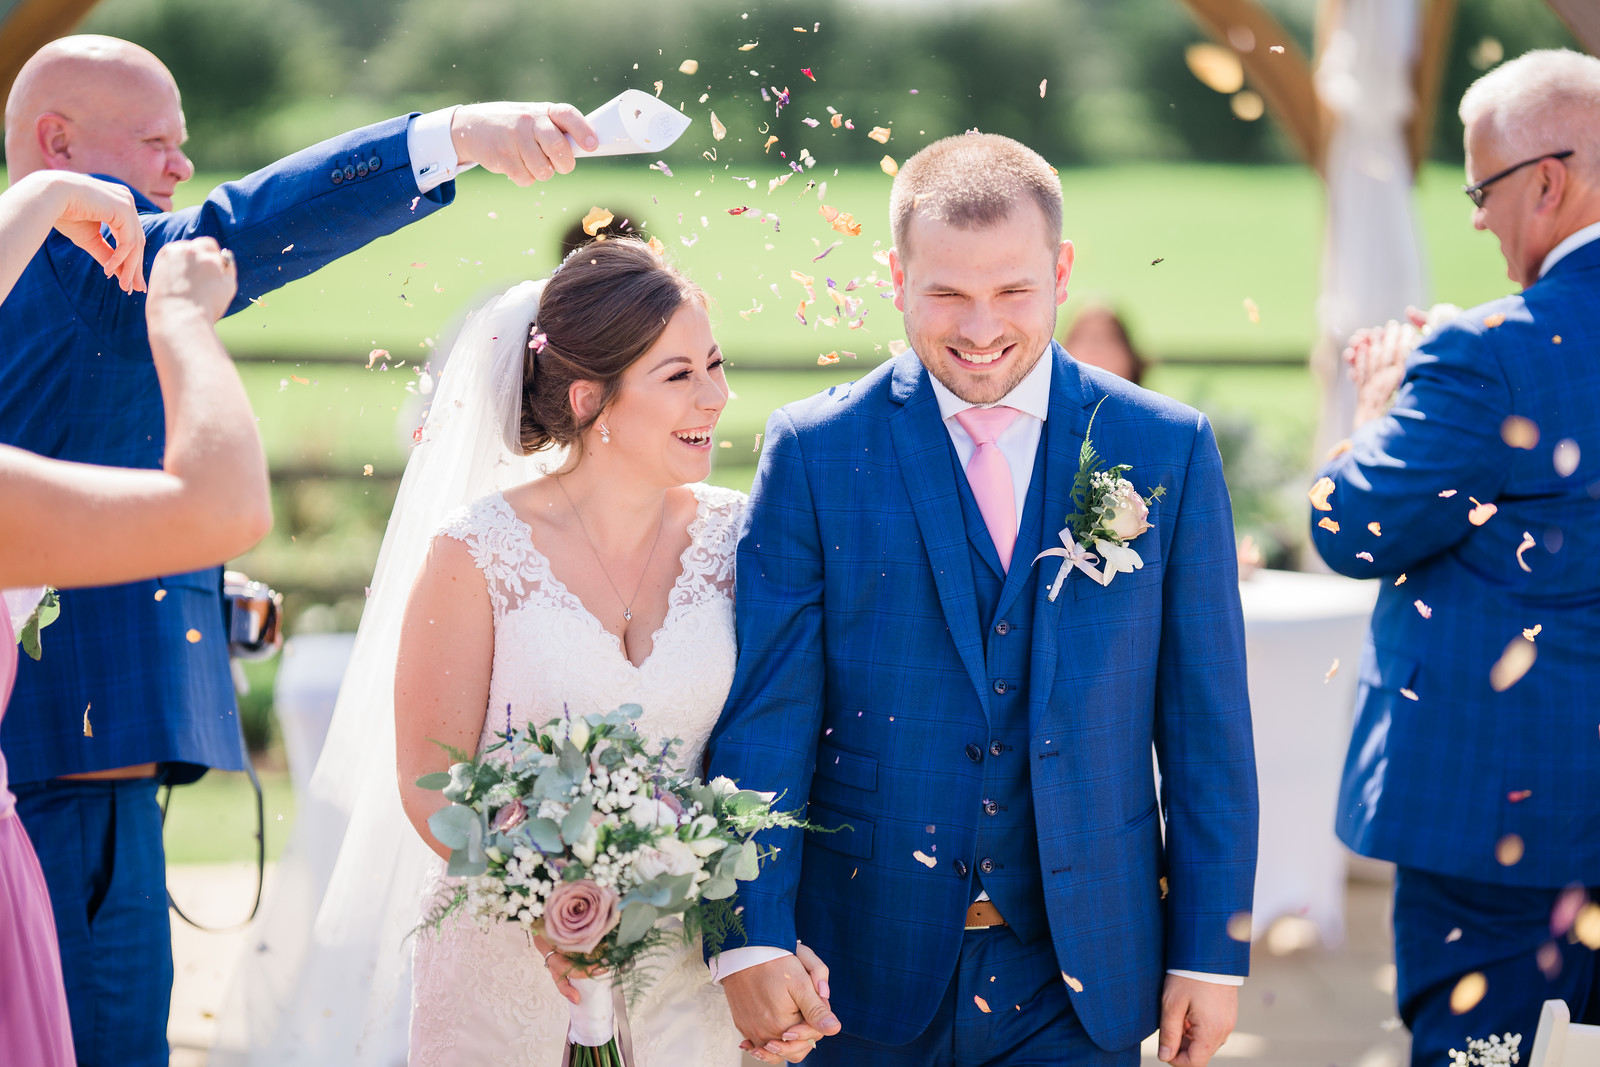 Bride and groom have confetti thrown over them by family and friends